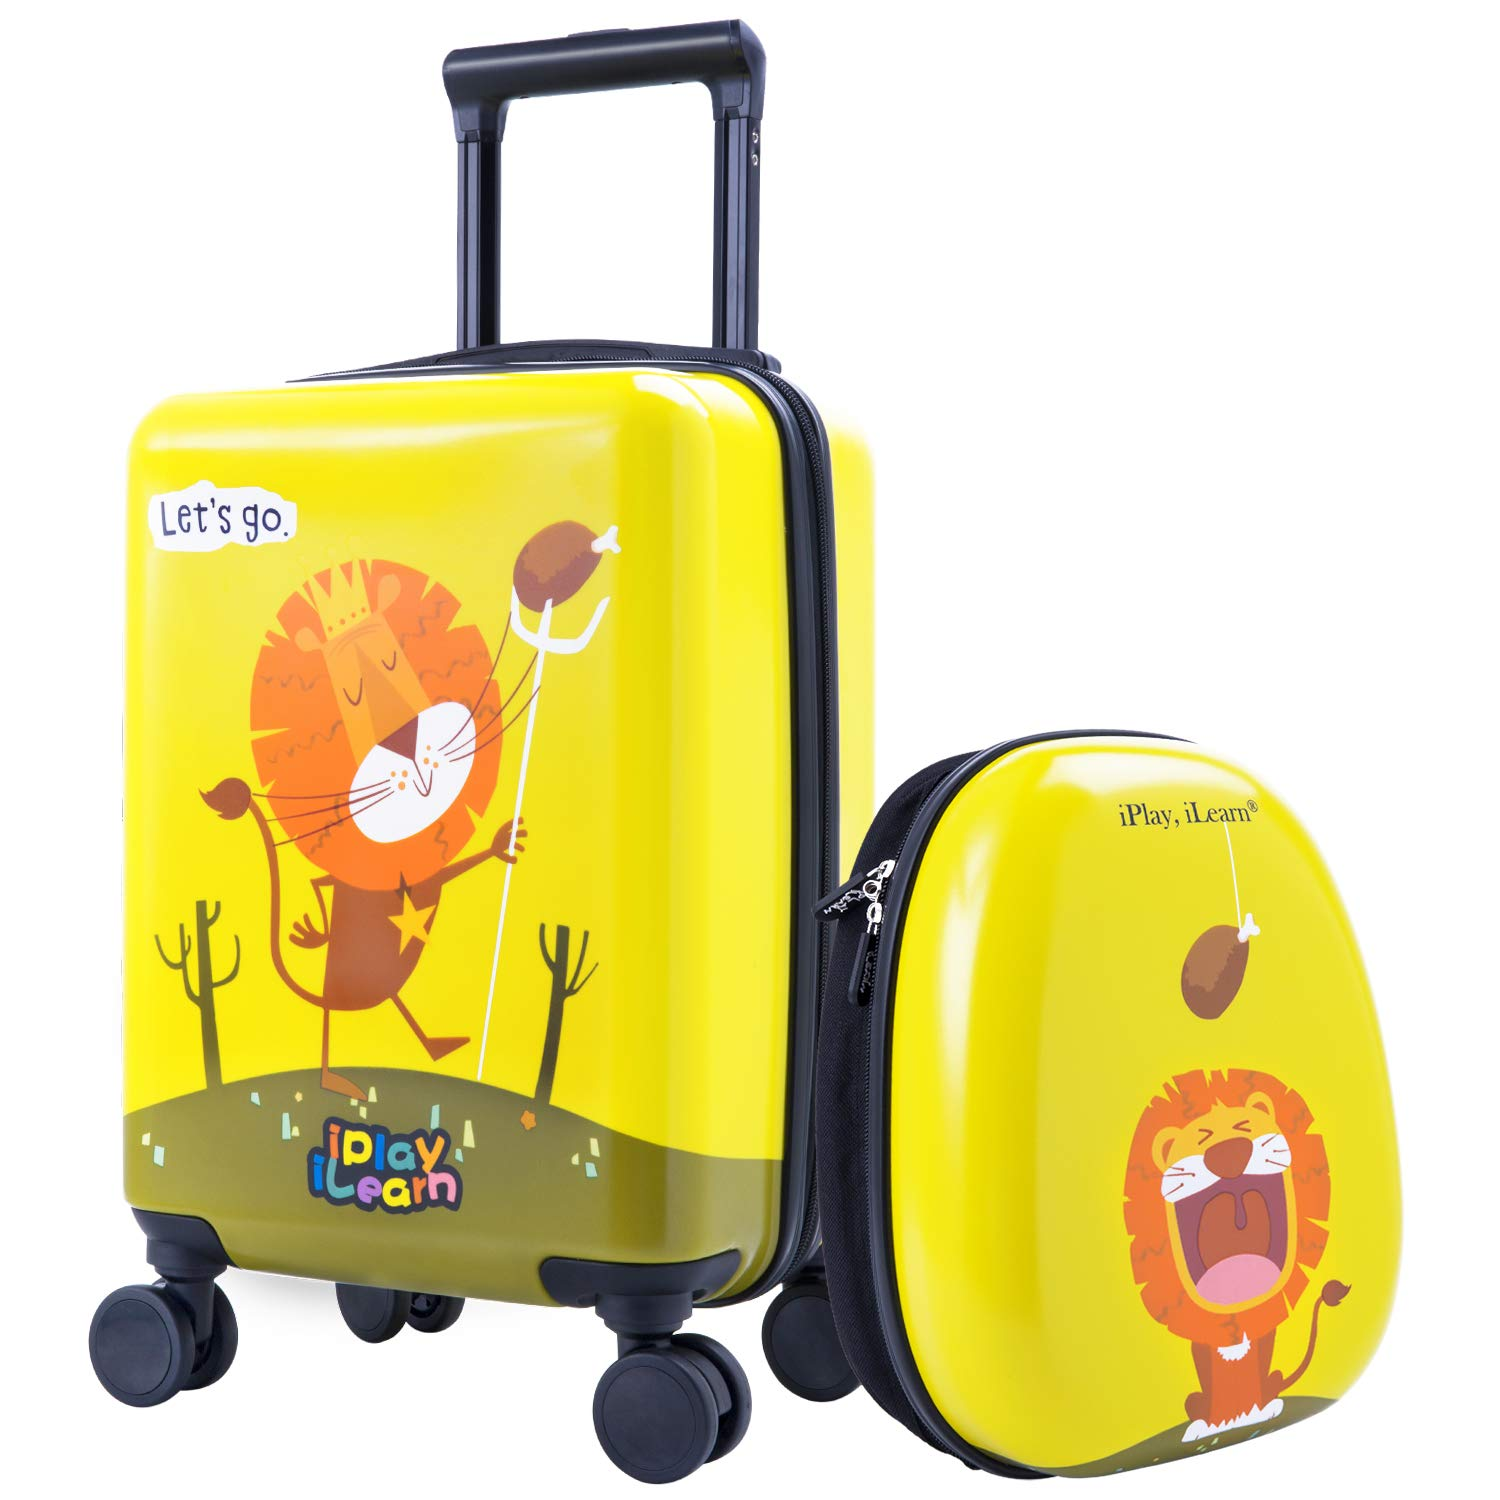 Kids Carry On Spinner Luggage, Hard Shell Travel Upright Rolling Suitcase Boys by iPlay, iLearn